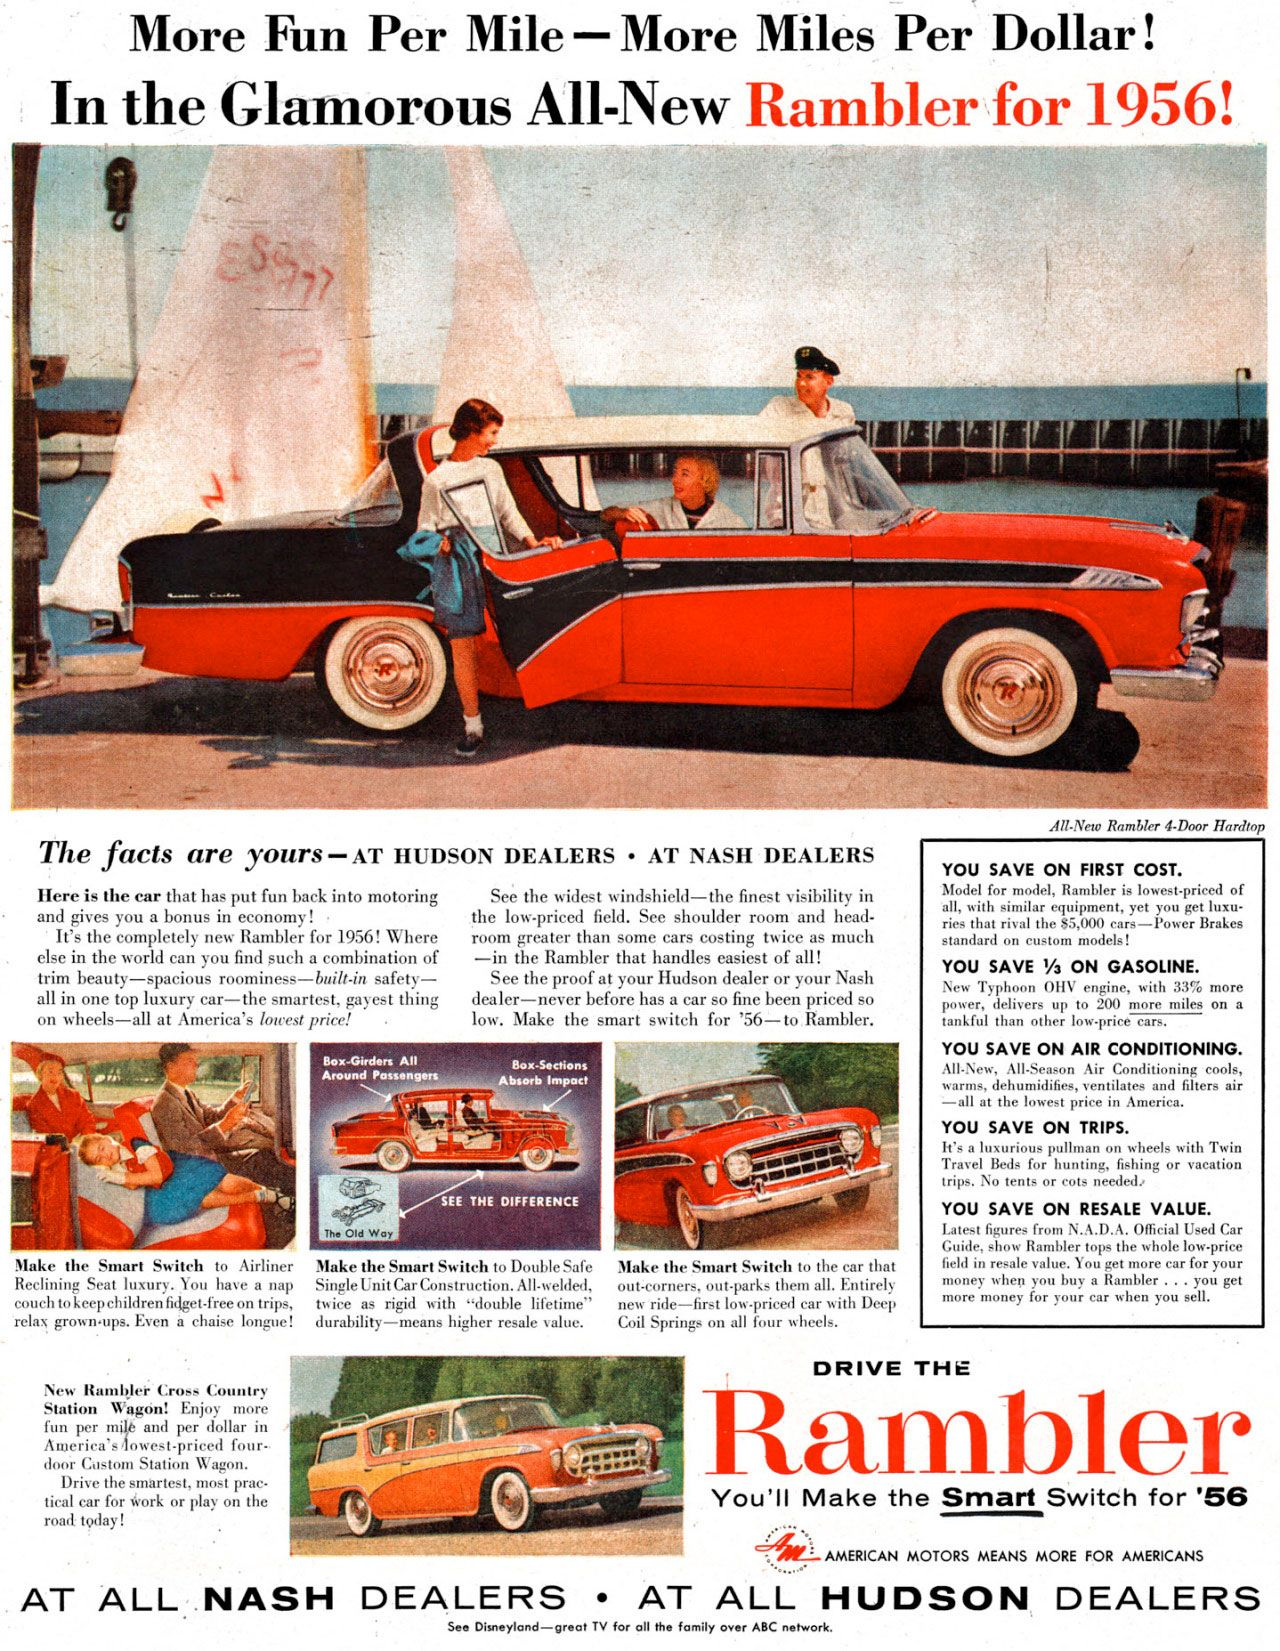 More Fun Per Mile—More Miles Per Dollar! In the Glamorous All-New Rambler for 1956!  The facts are yours — AT HUDSON DEALERS • AT NASH DEALERS  Here is the ear that has put fun back into motoring • and gives you a bonus in economy! It's the completely new Rambler for 1956! Where else in the world can you find such a combination of trim beauty—spacious roominess—built-is safety—all in one top luxury car—the smartest, gayest thing on wheels—all at America's lowest price! .  See the widest windshield—the finest visibility in the low-priced field. See shoulder room and head-room greater than some cars costing twice as much —in the Rambler that handles easiest of all! See the proof at your Hudson dealer or your Nash dealer—never before has a car so fine been priced so low. Make the smart switch for '56—to Rambler.  Make the Smart Switch to Airliner Make the Smart Switch to Double Safe Make the Smart Switch to the car that Reclining Seat luxury. You have a nap Singlelinit CarConstruction. All-welded, out-corners, out-parks them all. Entirely couch to keep children fidget-free on trips, twice as rigid with 'double lifetime' new ride—first low.priced car with Deep relax grown•ups. Even it chaise longue! durability—means higher resale value. Coil Springs on all four wheels.  New Rambler Cross Country Station Wagon! Enjoy more fun per milt and per dollar in America's 4owest-priced four-door Custom Station Wagon. Drive the smartest, most prac-tical car for Work or play on the road. today!  All-New Rambler 4-Door Hardtop  YOU SAVE ON FIRST COST. Model for model, Rambler is lowestpriced of all, with similar equipment, yet you get luxu-ries that rival the $5,000 cars—Power Brakes standard on custom models! YOU SAVE Ya ON GASOLINE. New Typhoon 01-1V engine, with 33% more Mefri:1 deliverst h:lr) to 200emore on YOU SAVE ON AIR CONDITIONING. All-New, All-Season Air Conditioning cools, warms, dehumidifies, ventilates and filters air —all at the lowest price in America. YOU SAVE ON TRIPS. It's a luxurious pullinan on wheels with Twin Travel Beds for hunting, fishing or vacation trips. No tents or cots needed: YOU SAVE ON RESALE VALUE. Latest figures from N.A.D.A. Official Used Car Guide, show Rambler tops the whole low-price field in resale value. You get more car for your money cher you buy a Rambler . . . you get more money for your car when you sell.  DRIVE THE  Rambler  You'll Make the Smart Switch for '56  4:4Ir- AMERICAN MOTORS MEANS MORE FOR AMERICANS  AT ALL NASH DEALERS • AT ALL HUDSON DEALERS  See Disneyland—great TV for all Me family over ABC network.